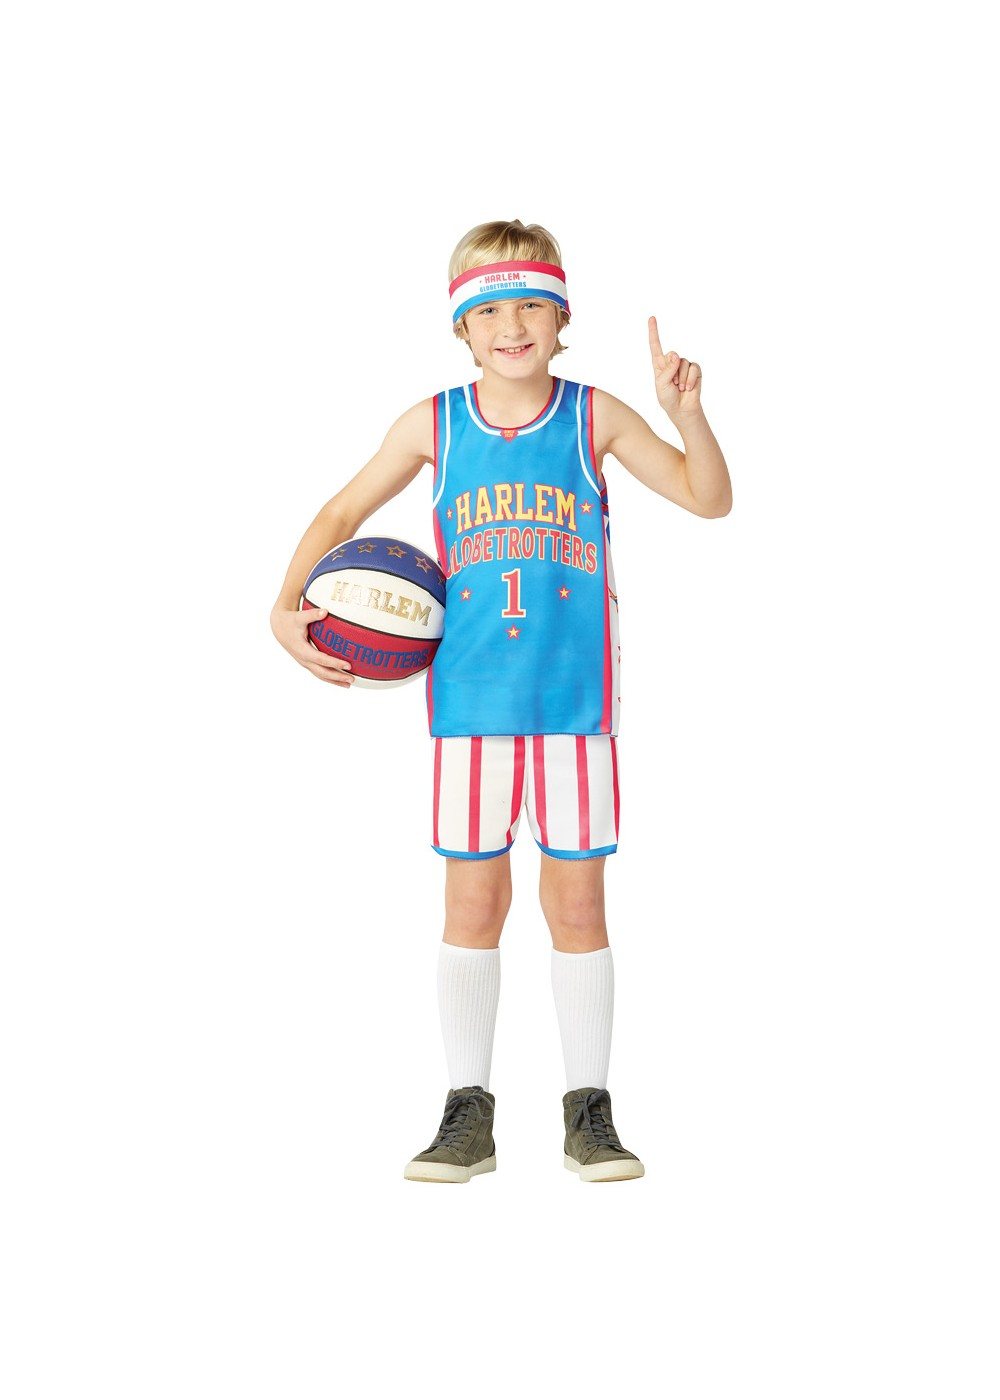 Harlem Globetrotters Uniform Costume